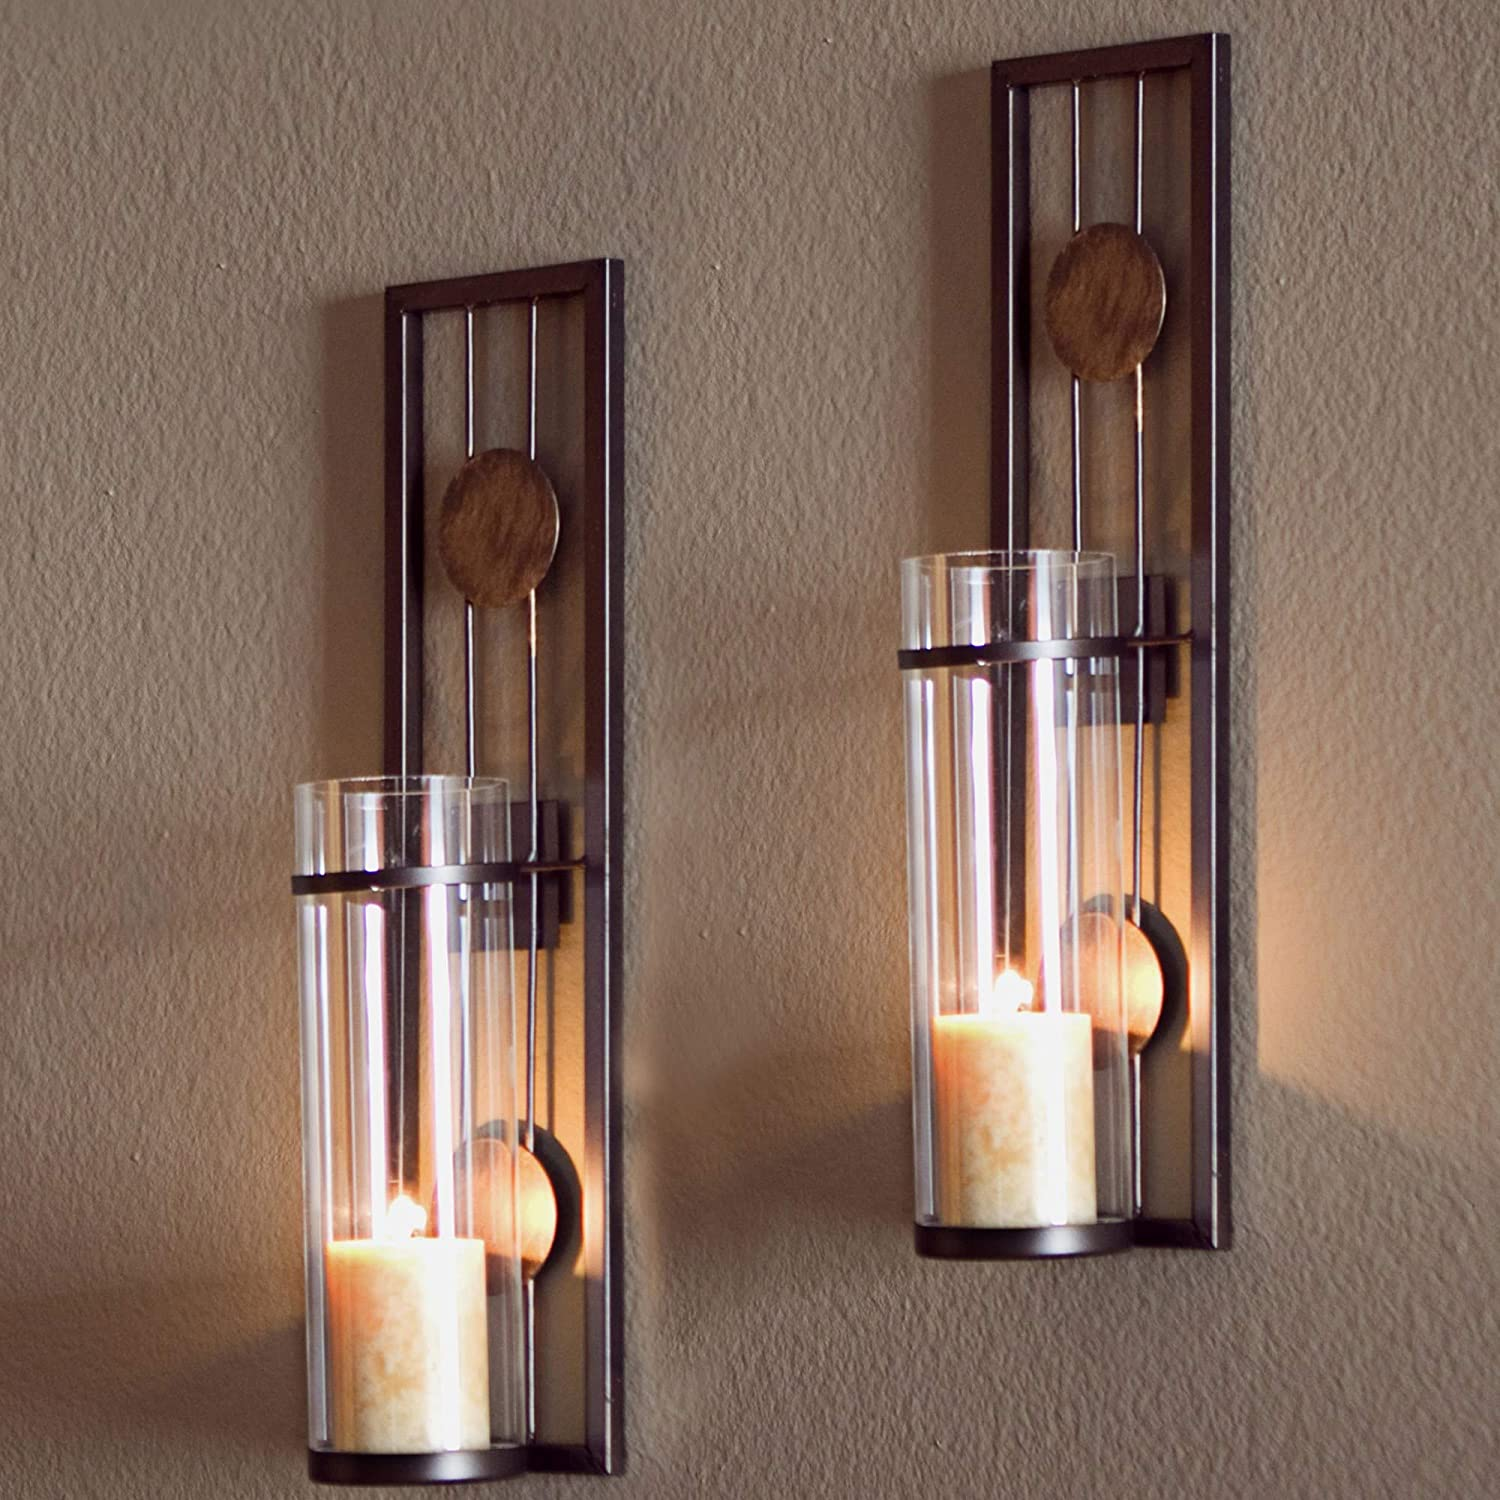 Amazon Com 2 Piece Brown Tan Candle Holders Metal Sconce Set Modern Contemporary Wall Sconces Candles Warm Romantic Ambiance Elegant Geometric Design Circle Pattern Iron Home Kitchen